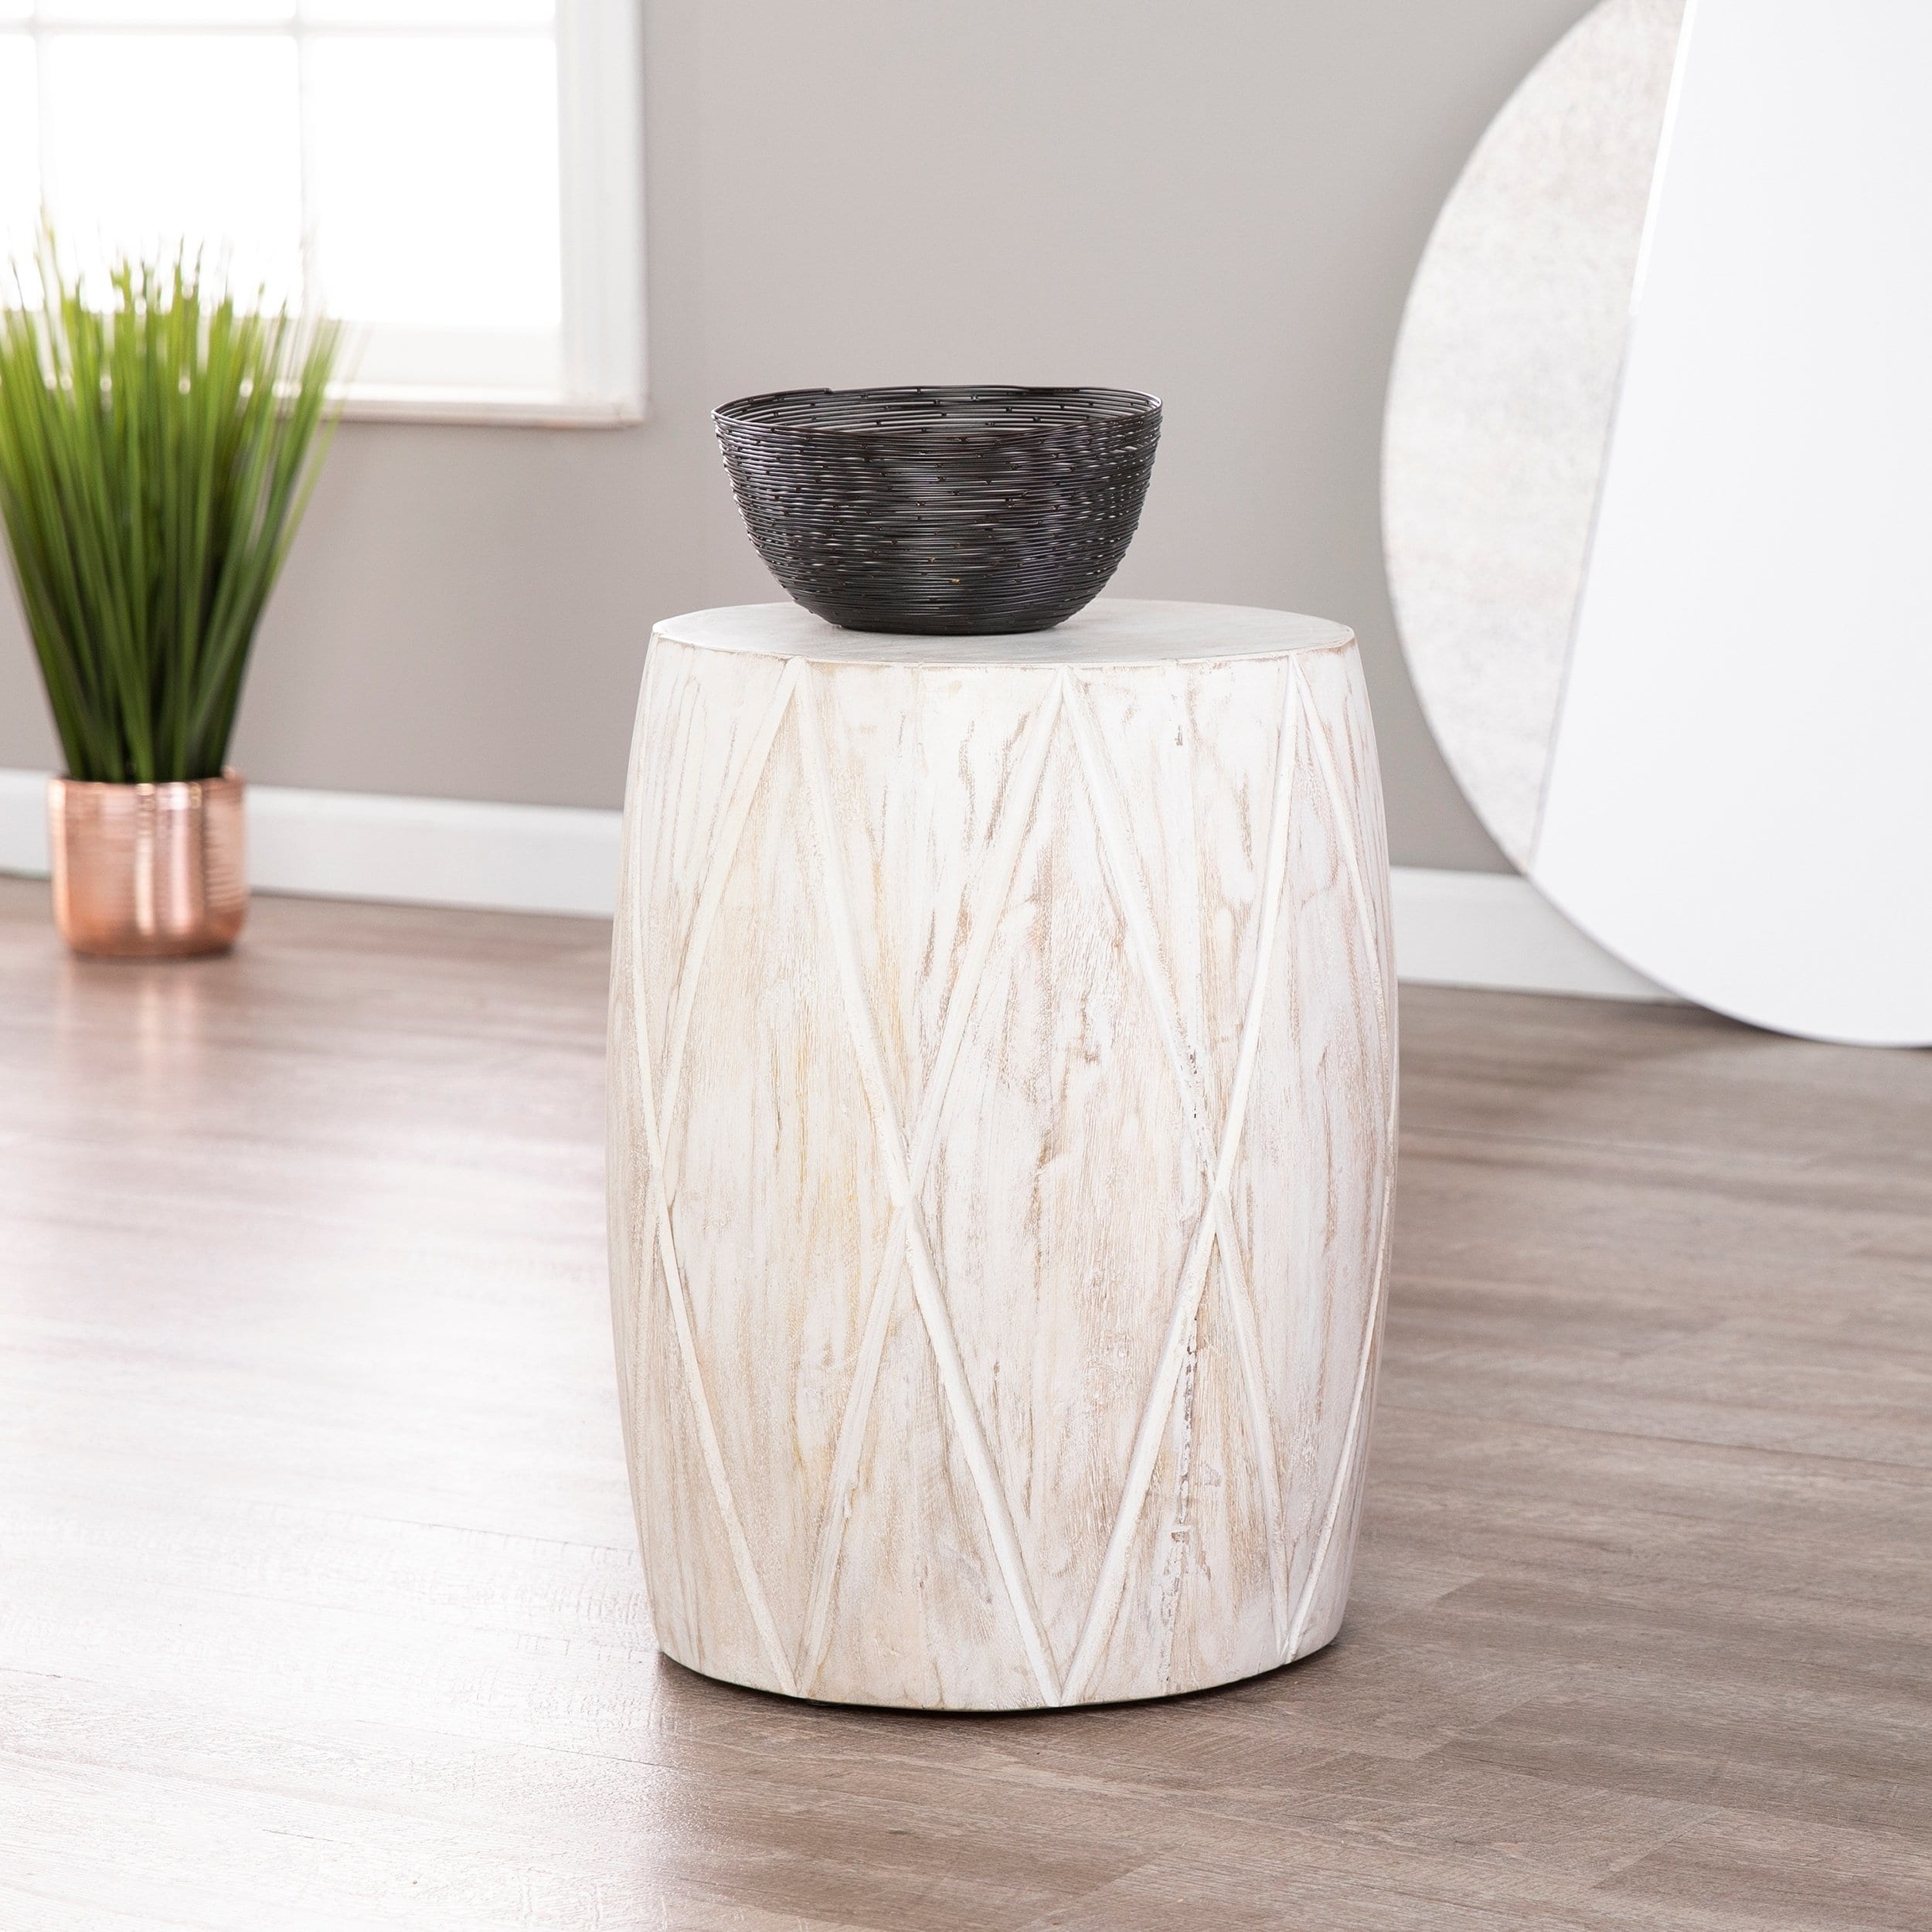 holly martin saco solid wood accent table stool furniture free shipping today marble top kitchen set lazy susan small crystal lamp iron nesting tables chairside mirrored coffee